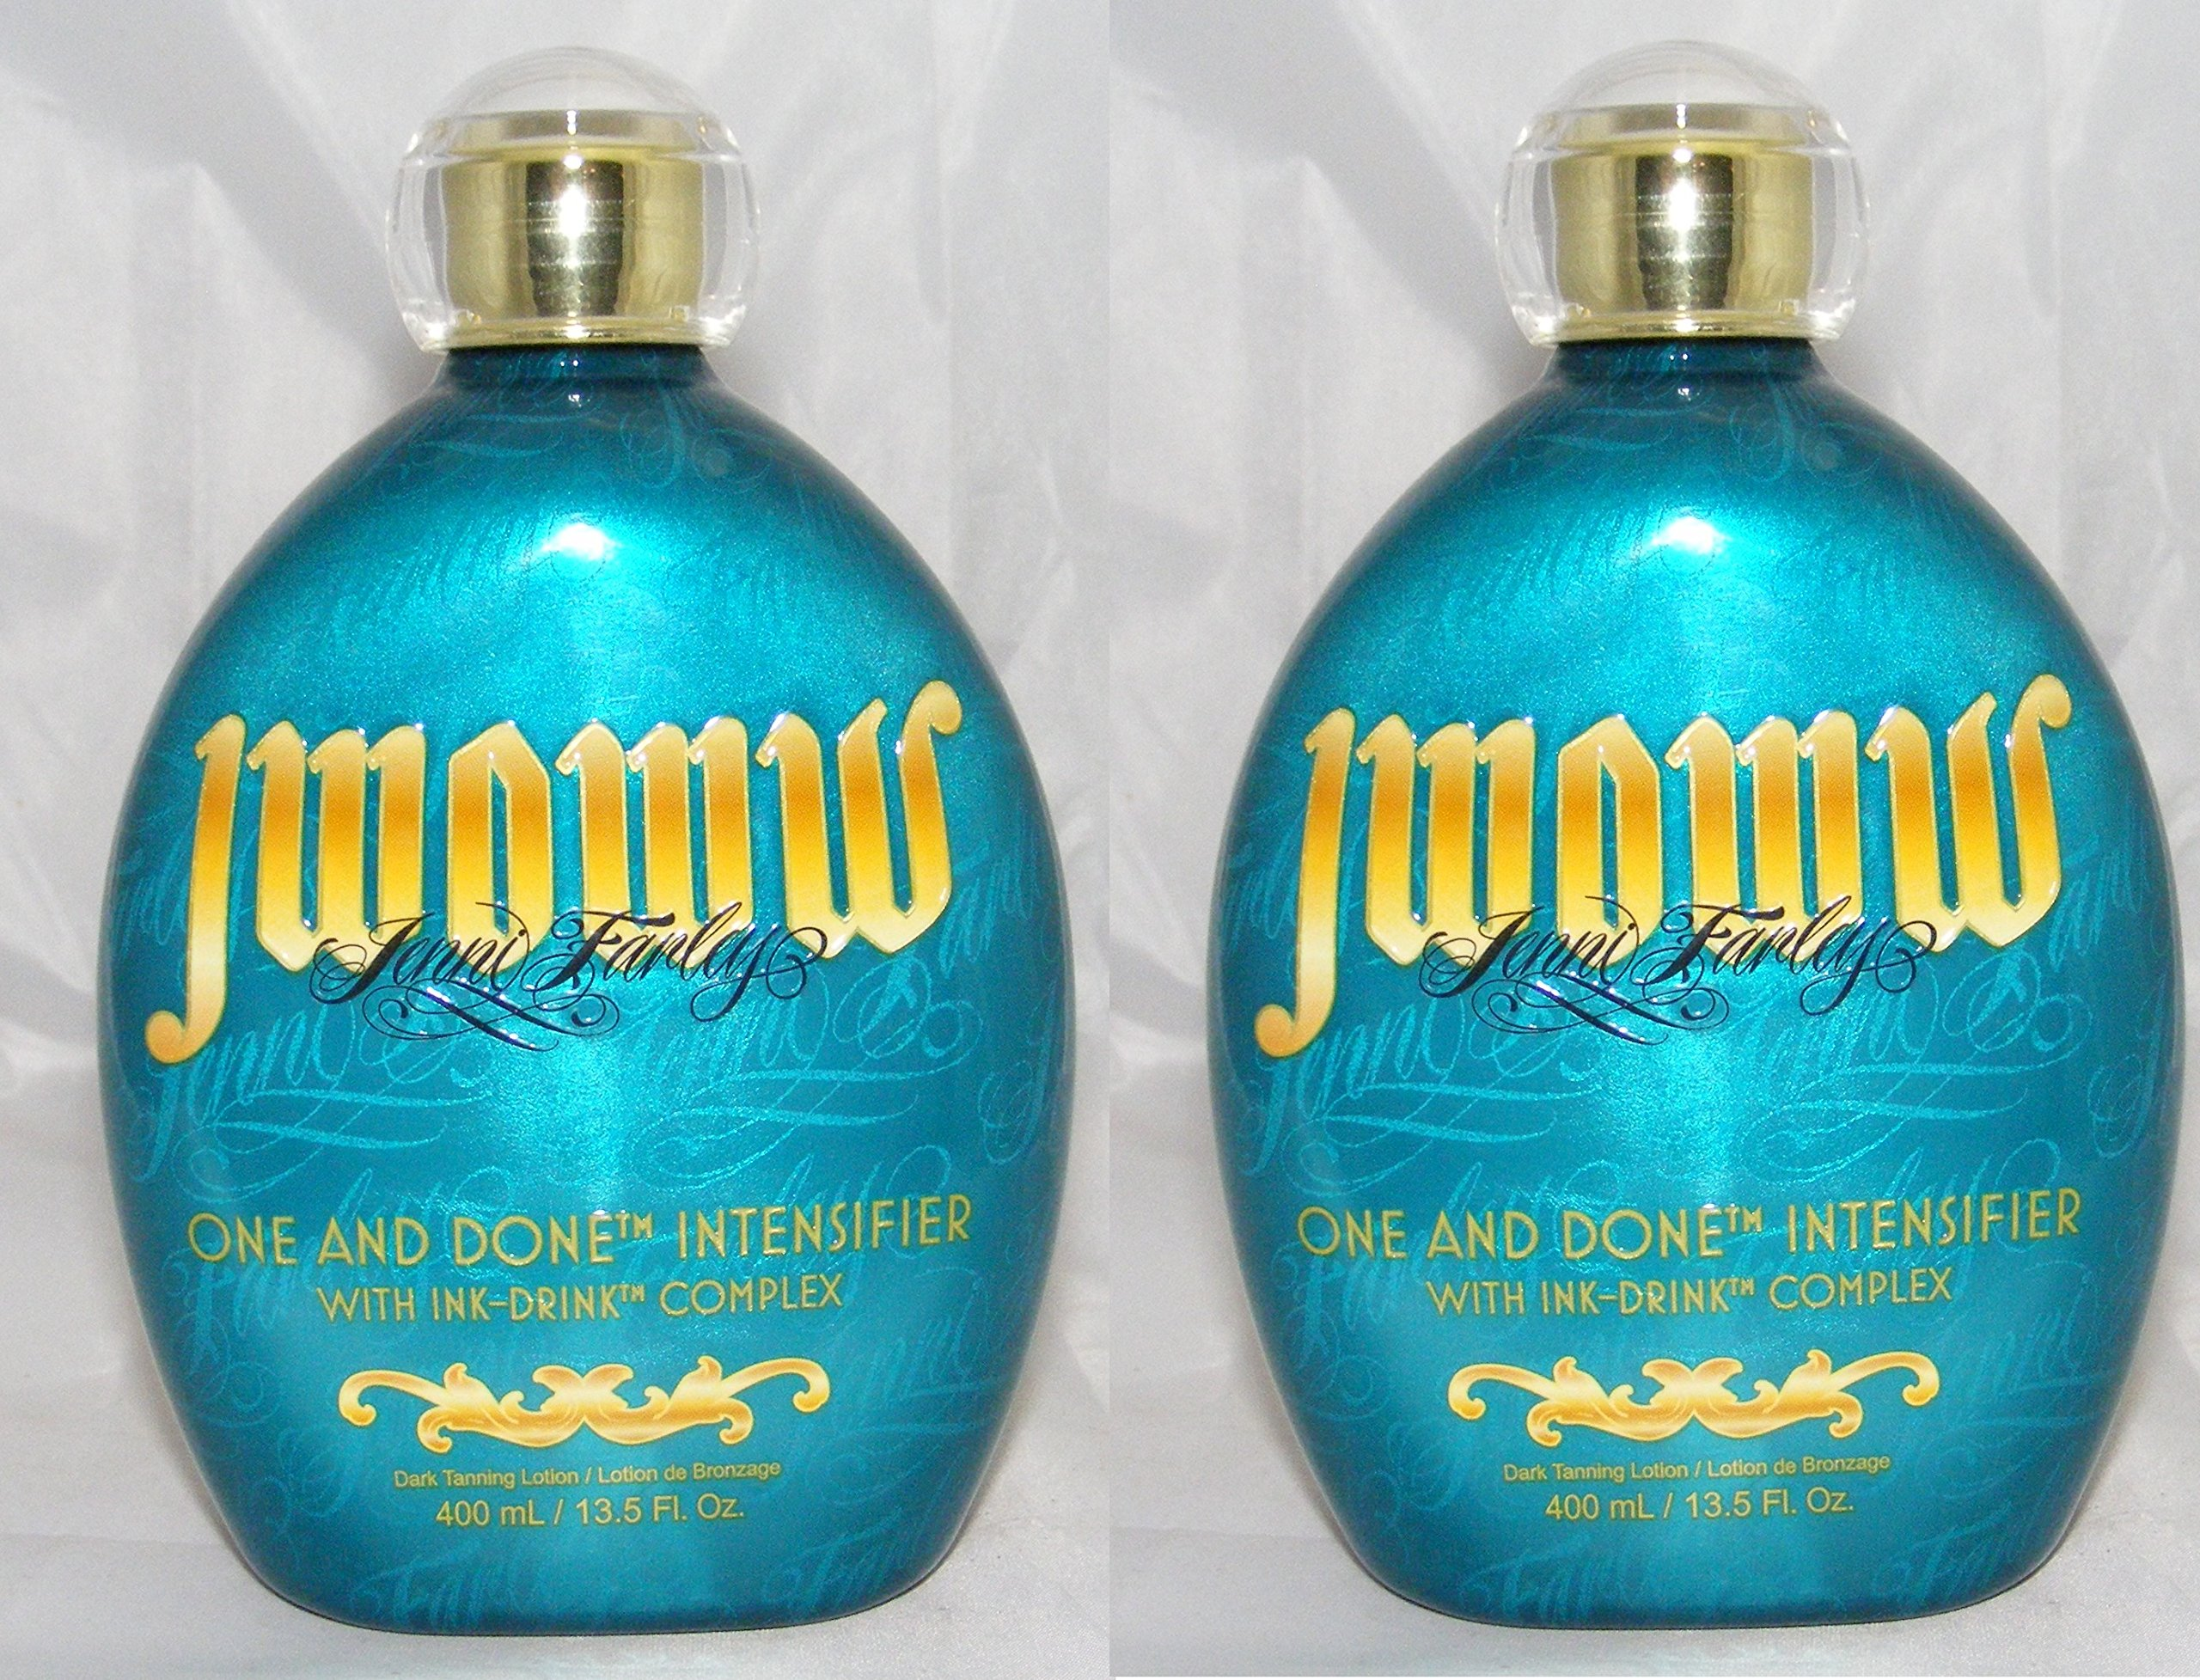 Lot of 2 New 2015 Australian Gold JWOWW ONE and DONE INTENSIFIER, 13.5 Ounce (400ml) 2 Bottles Twin Pack